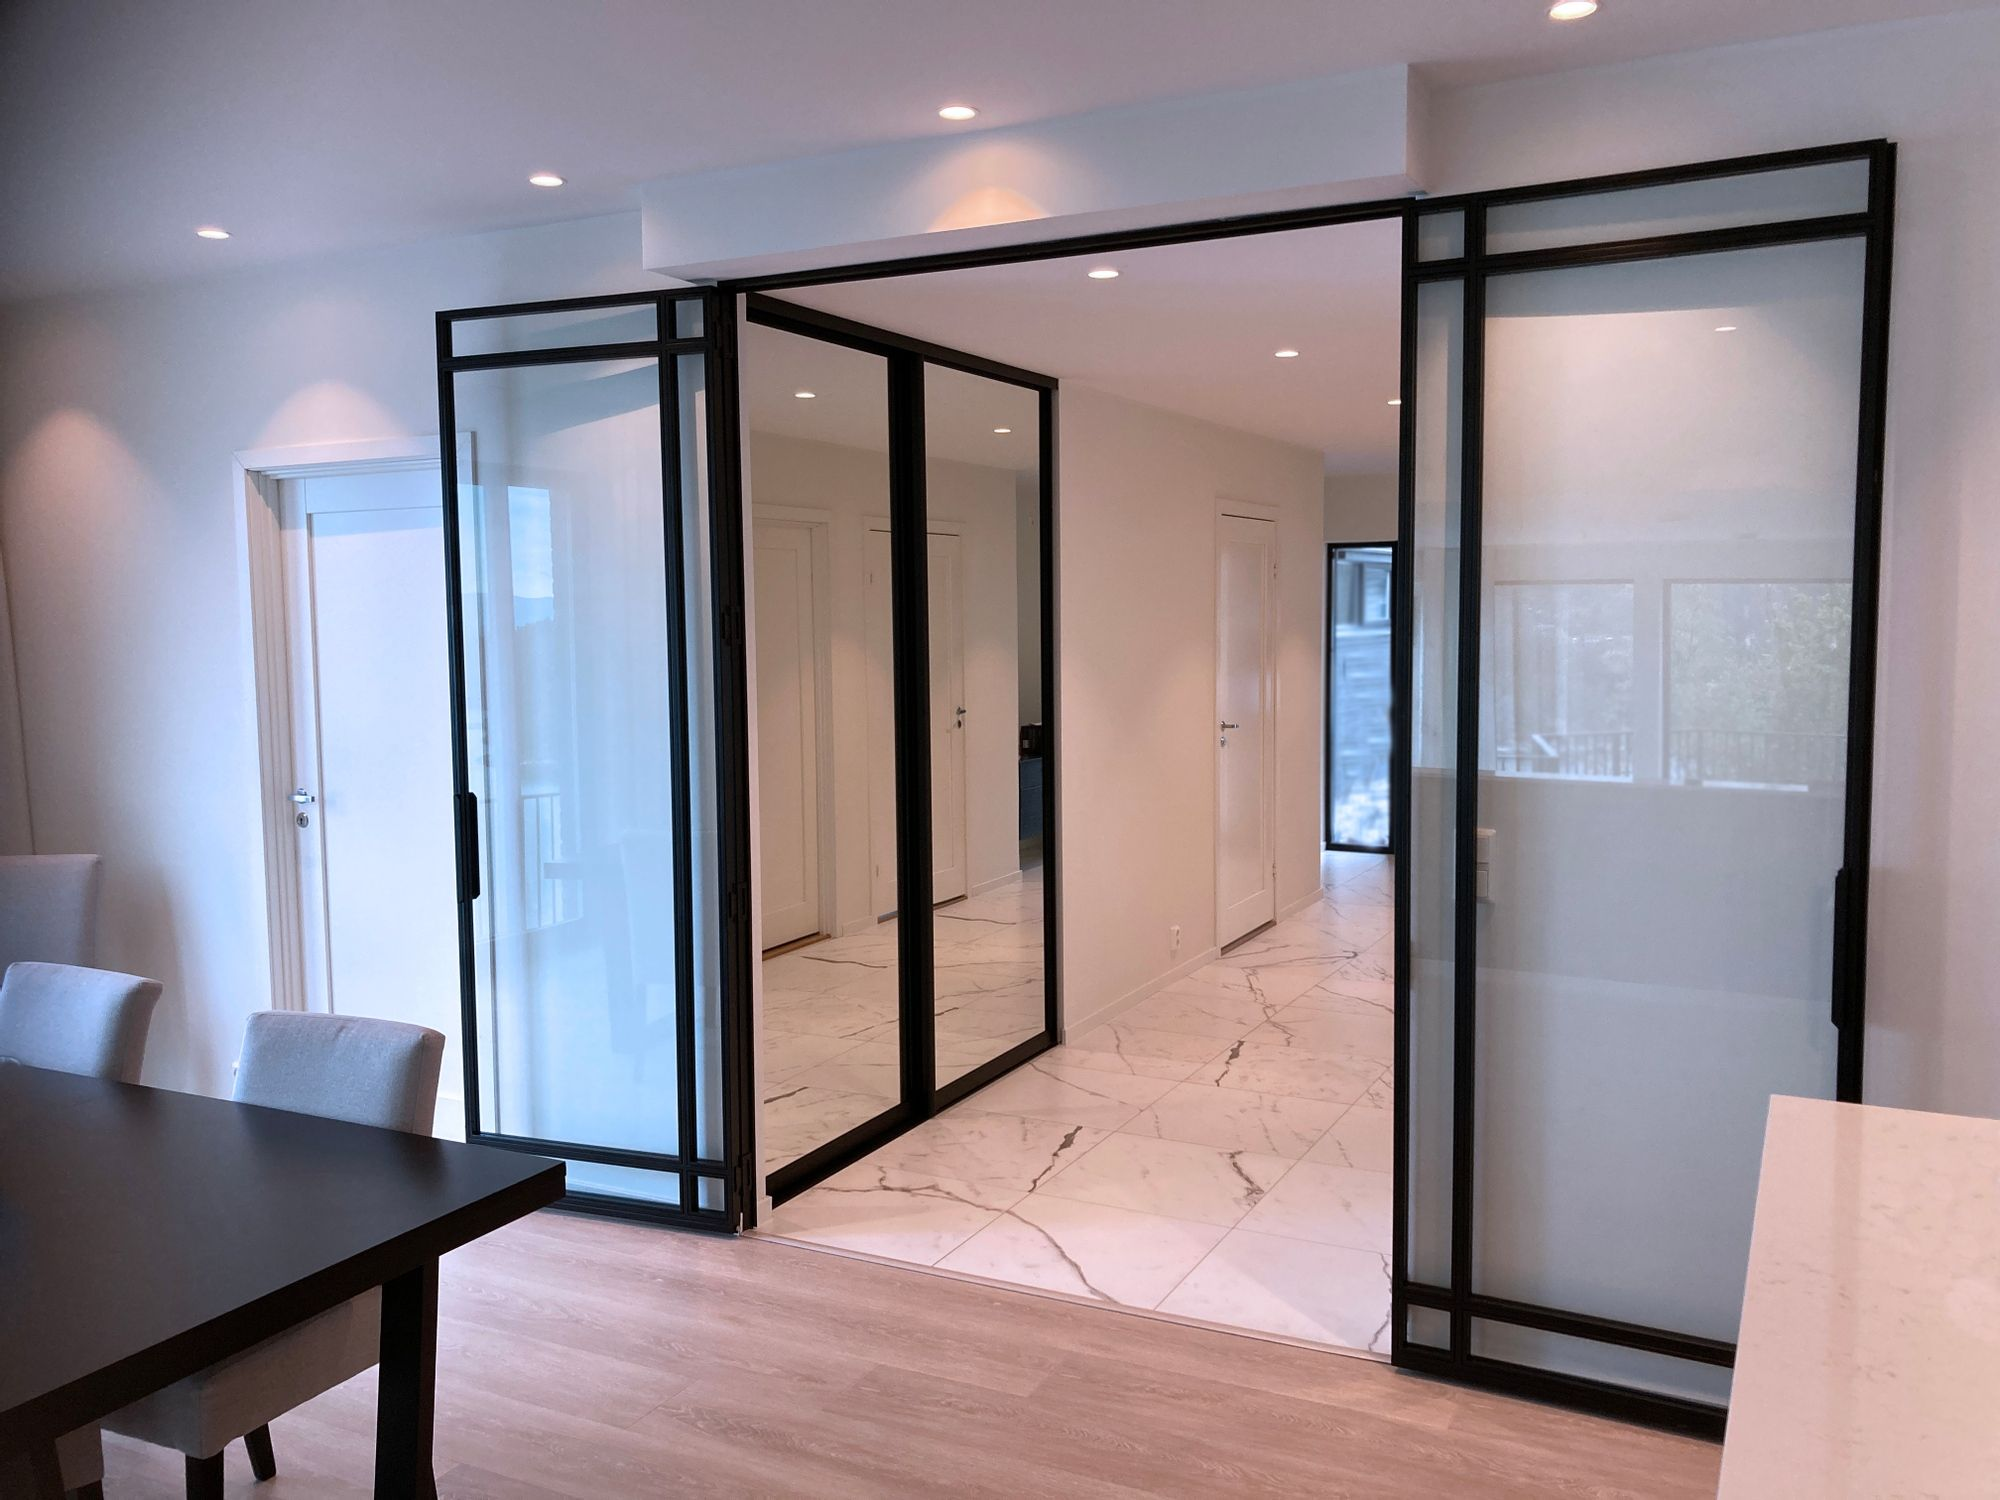 180 degree opening double doors, for optimal functionality a…